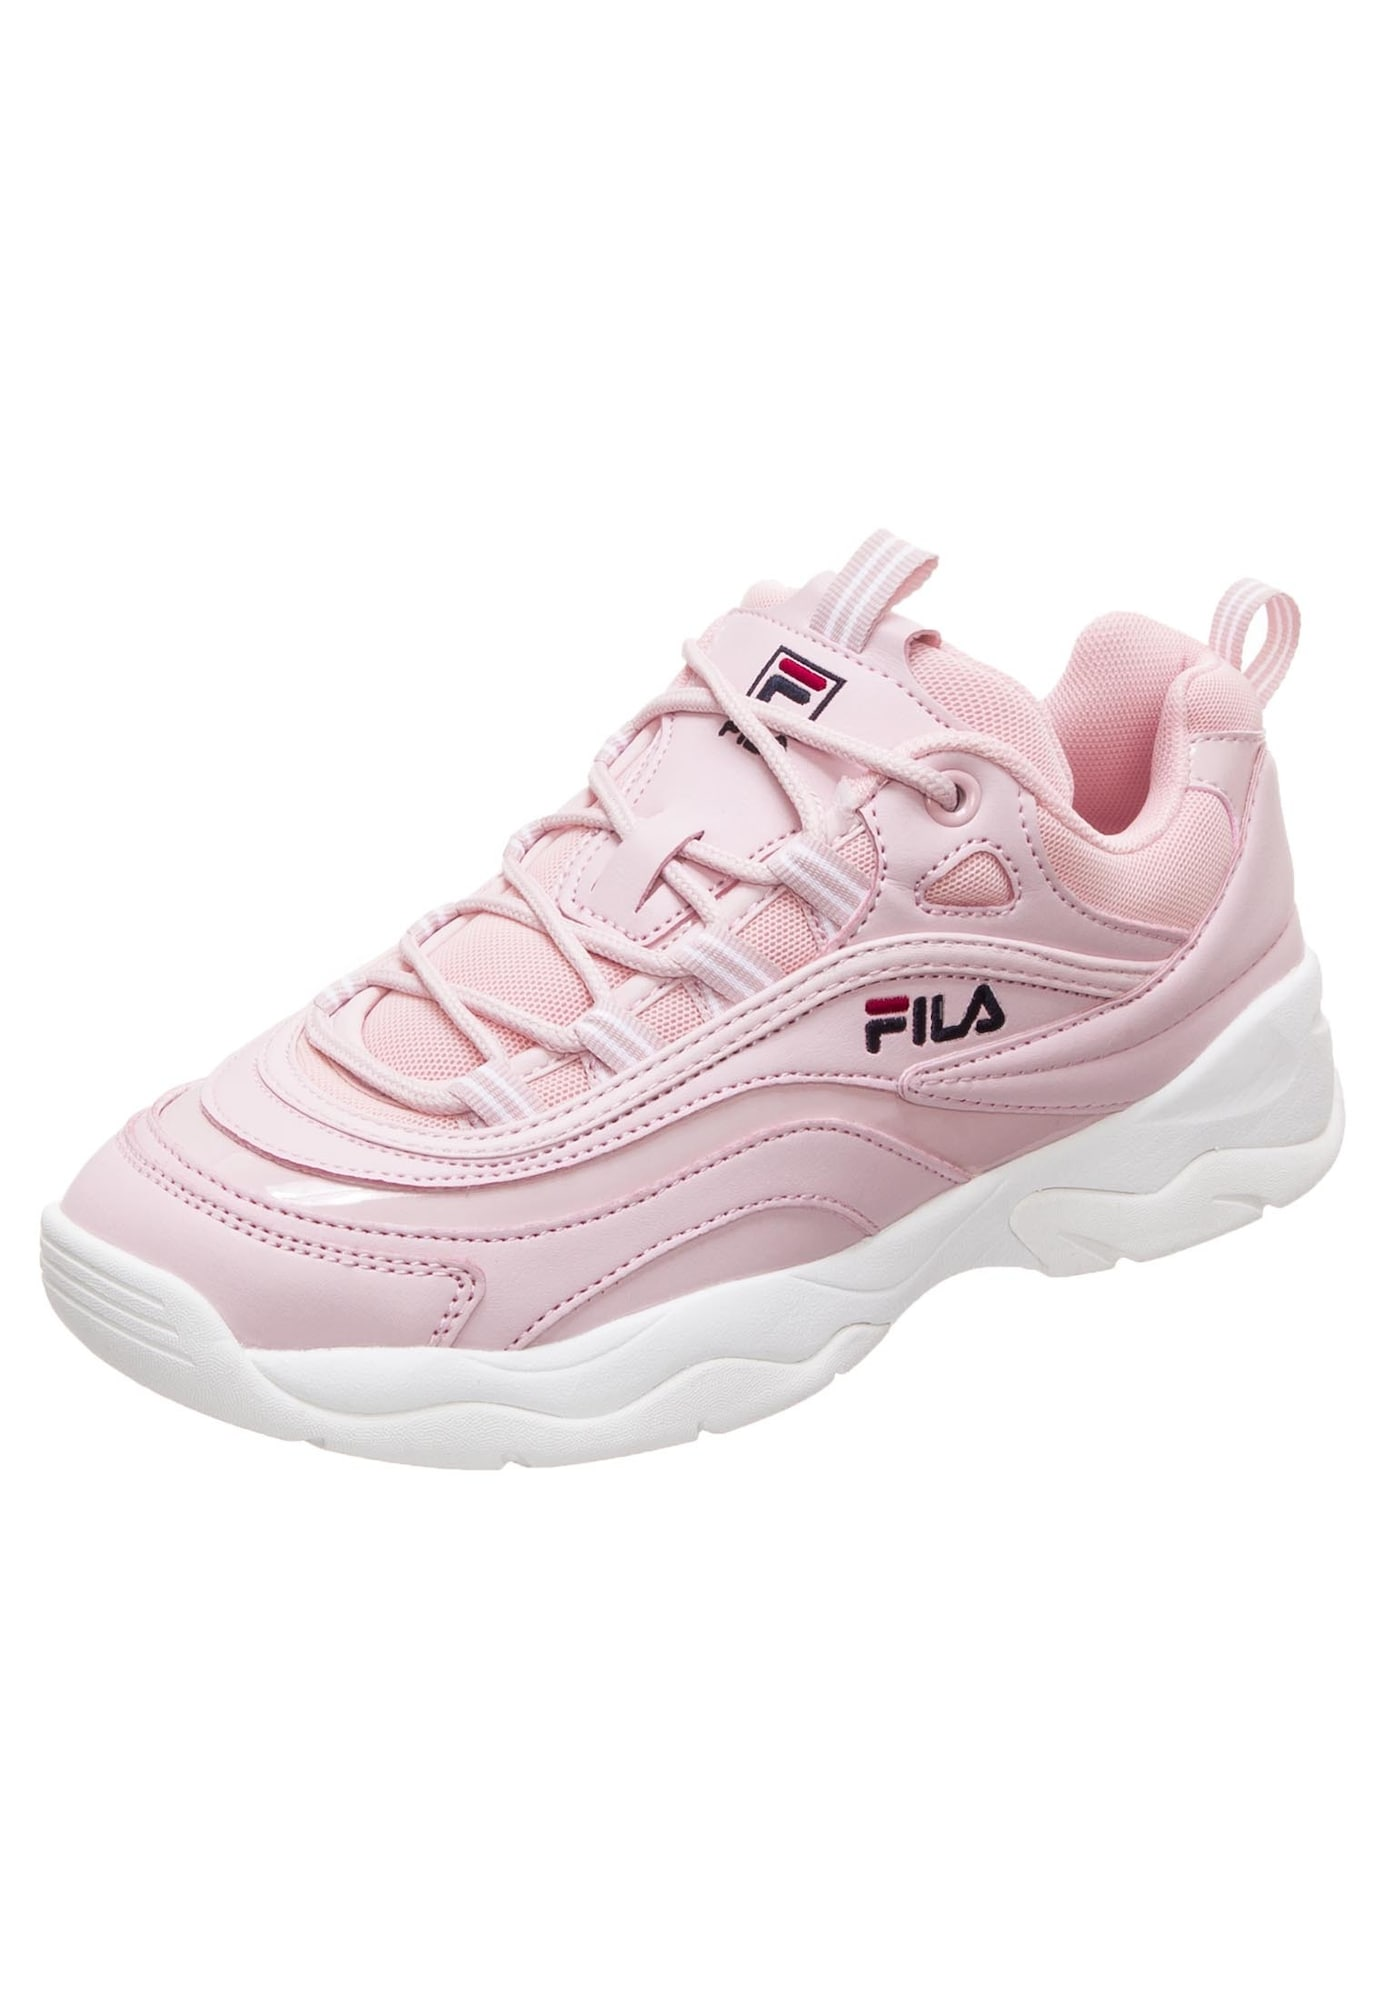 FILA, Dames Sneakers laag 'Ray F', rosa / wit